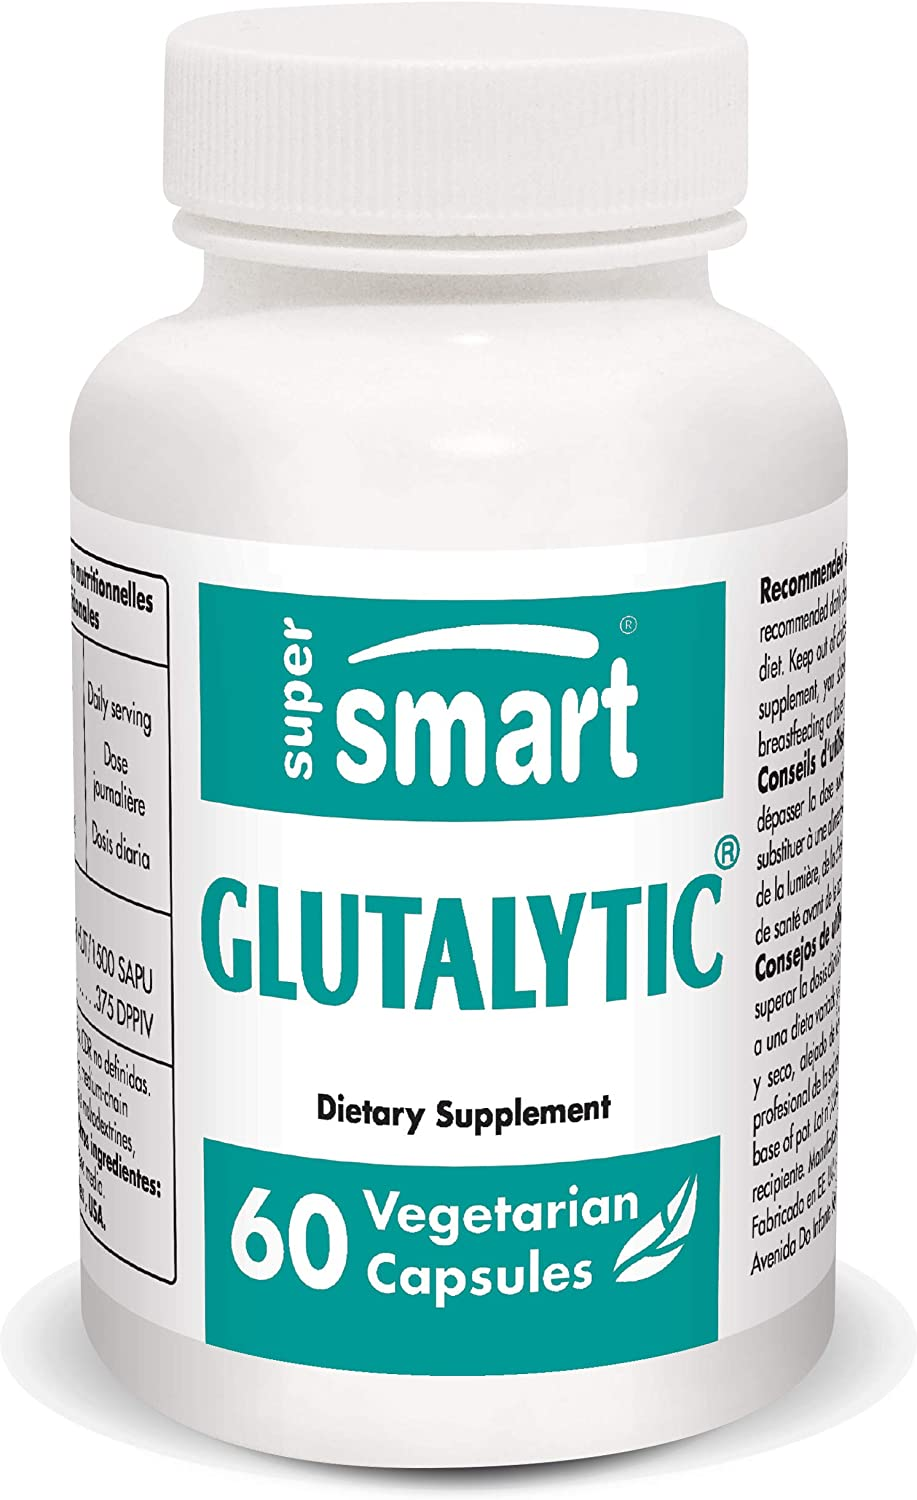 Supersmart - Glutalytic - Fights The Digestive Problems Associated with Gluten Consumption - Helps with Gluten Sensitivity & Digestion | Non-GMO & Gluten Free - 60 Vegetarian Capsules